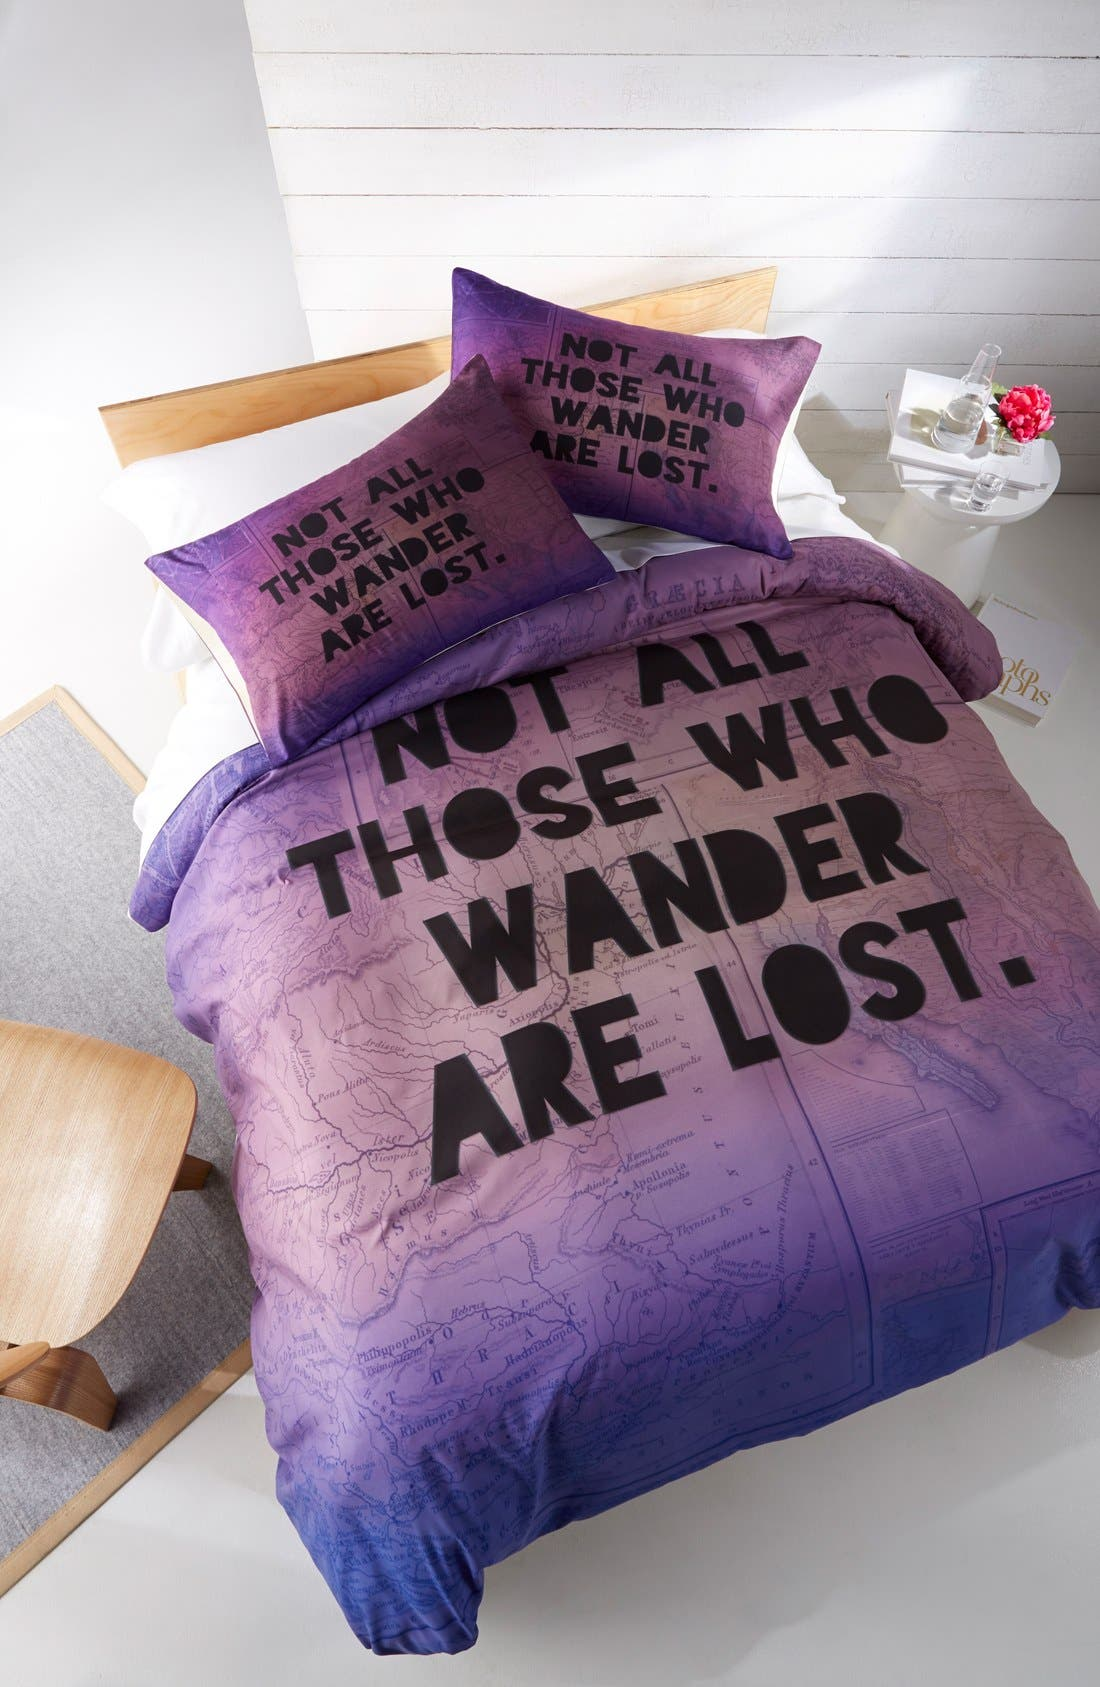 Main Image - DENY Designs 'Those Who Wander' Duvet Cover Set